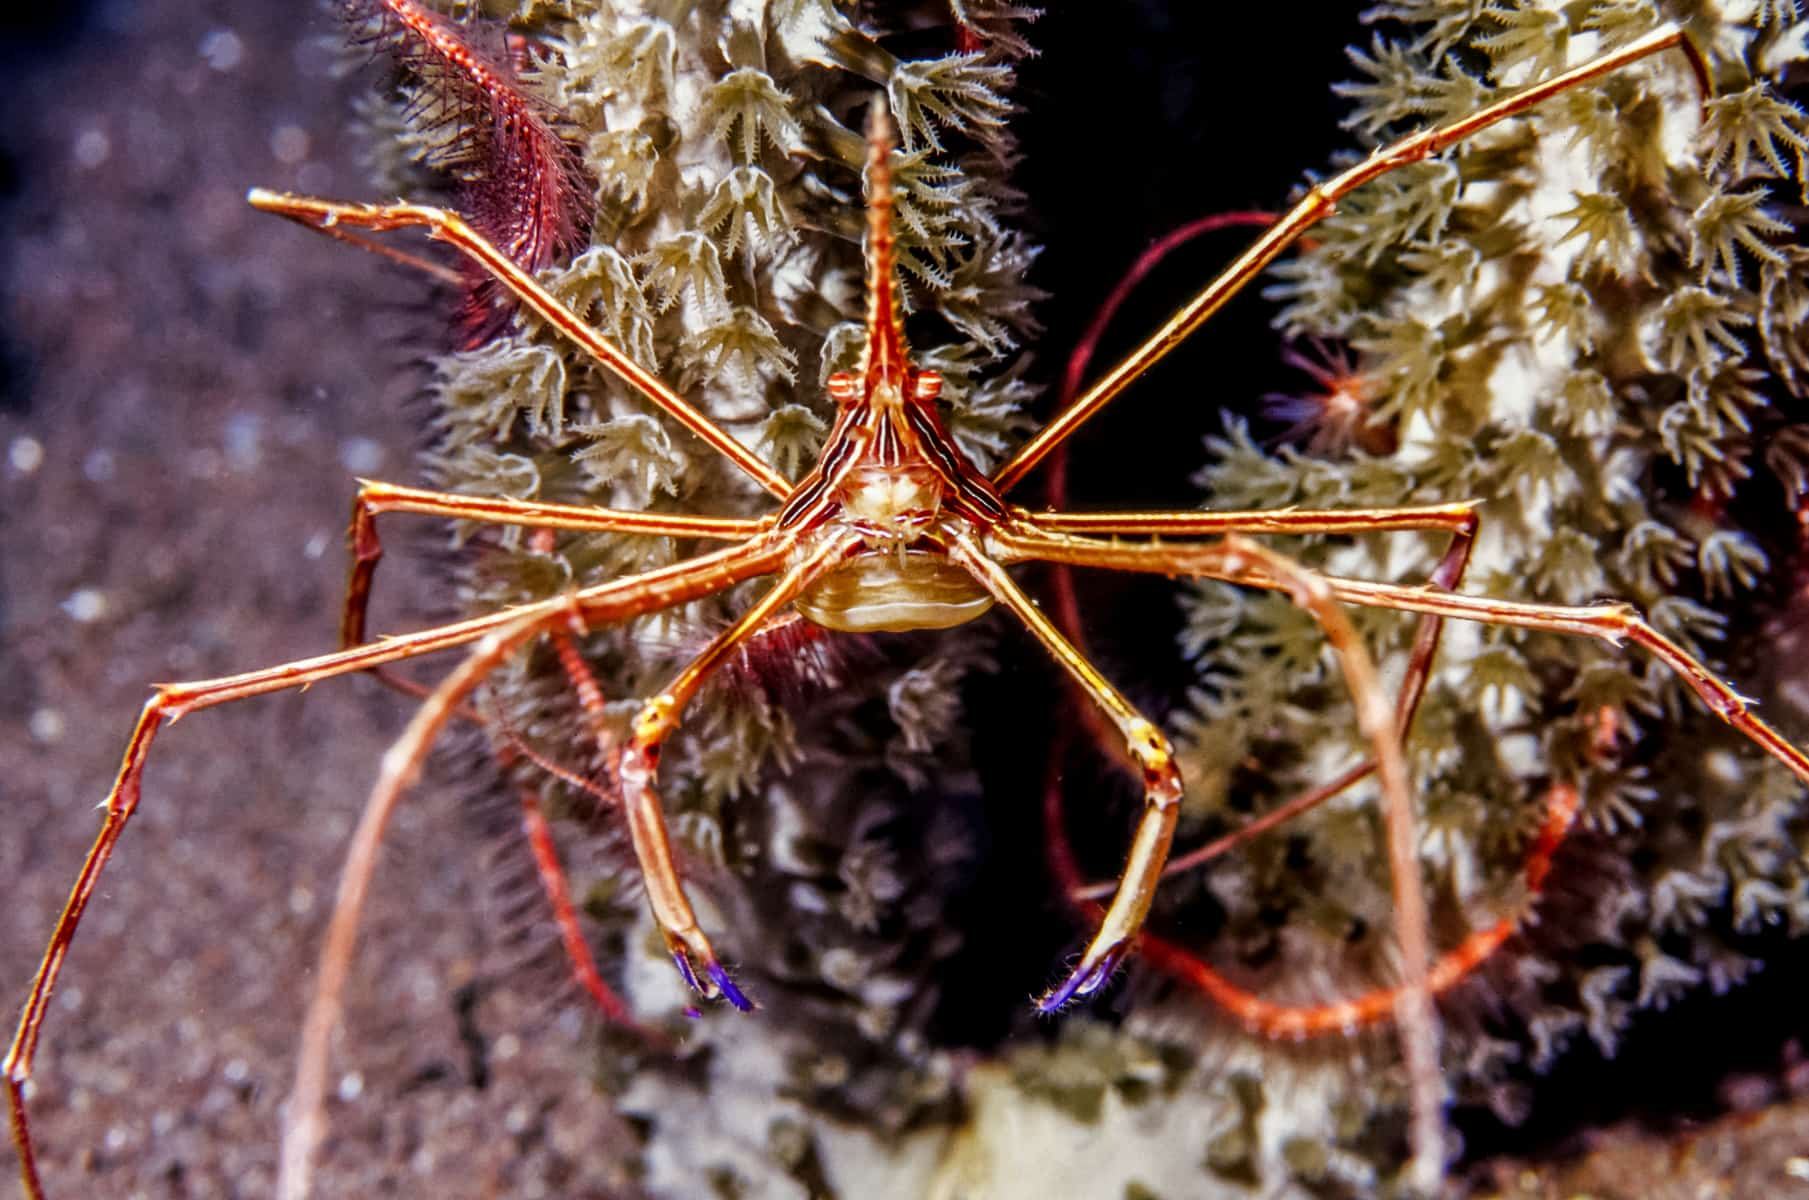 How To Care For An Arrow Crab